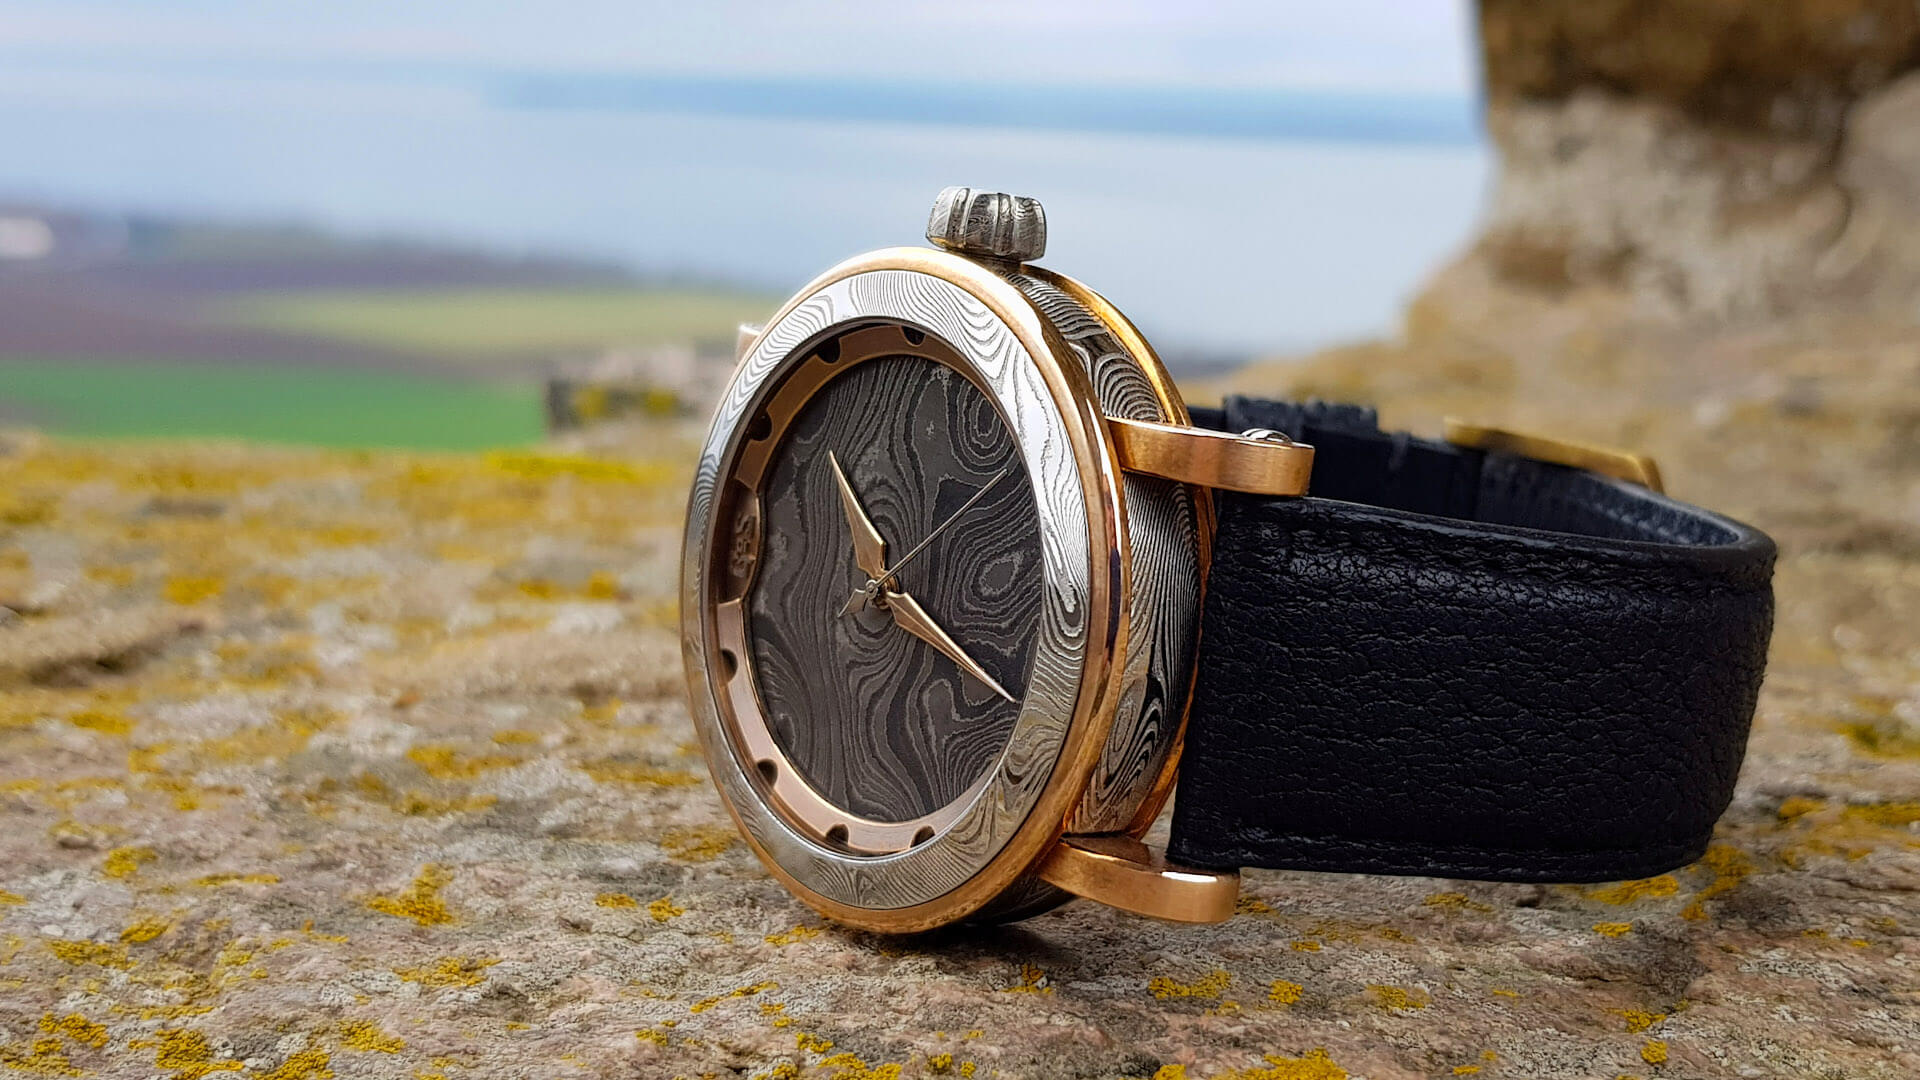 The Väring watch by GoS watches